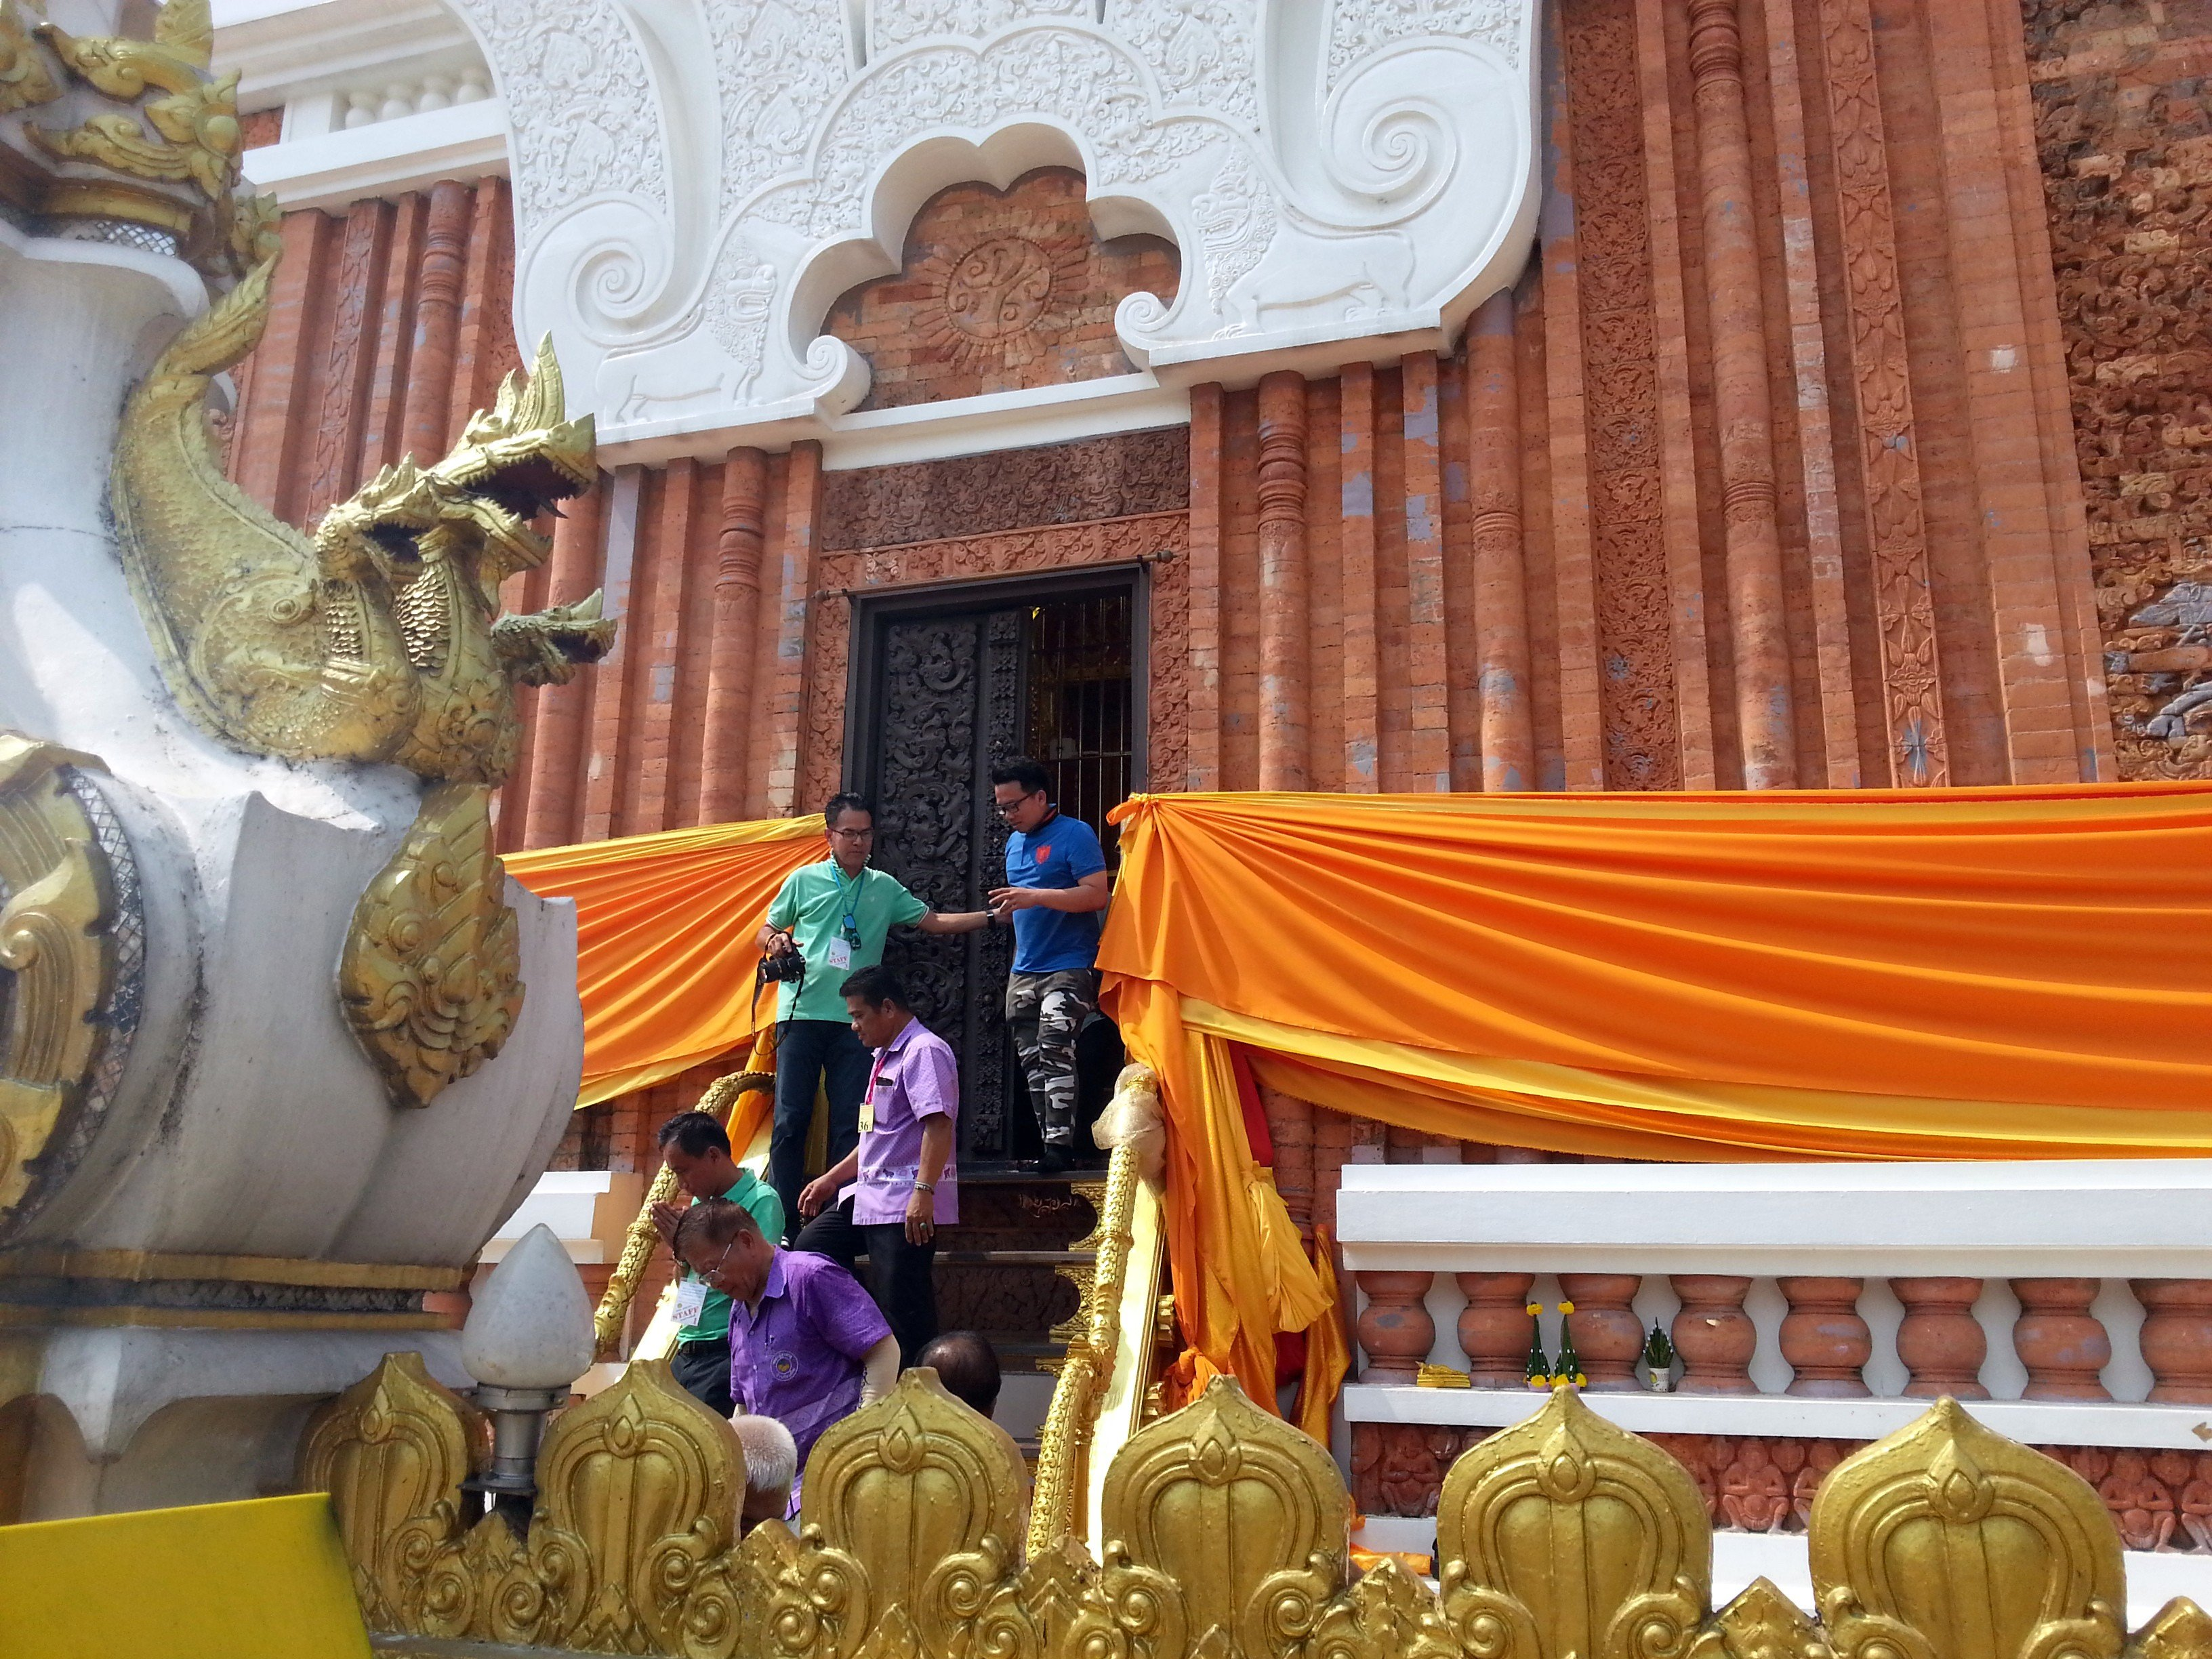 Entrance to the relic room at Wat Phra That Phanom